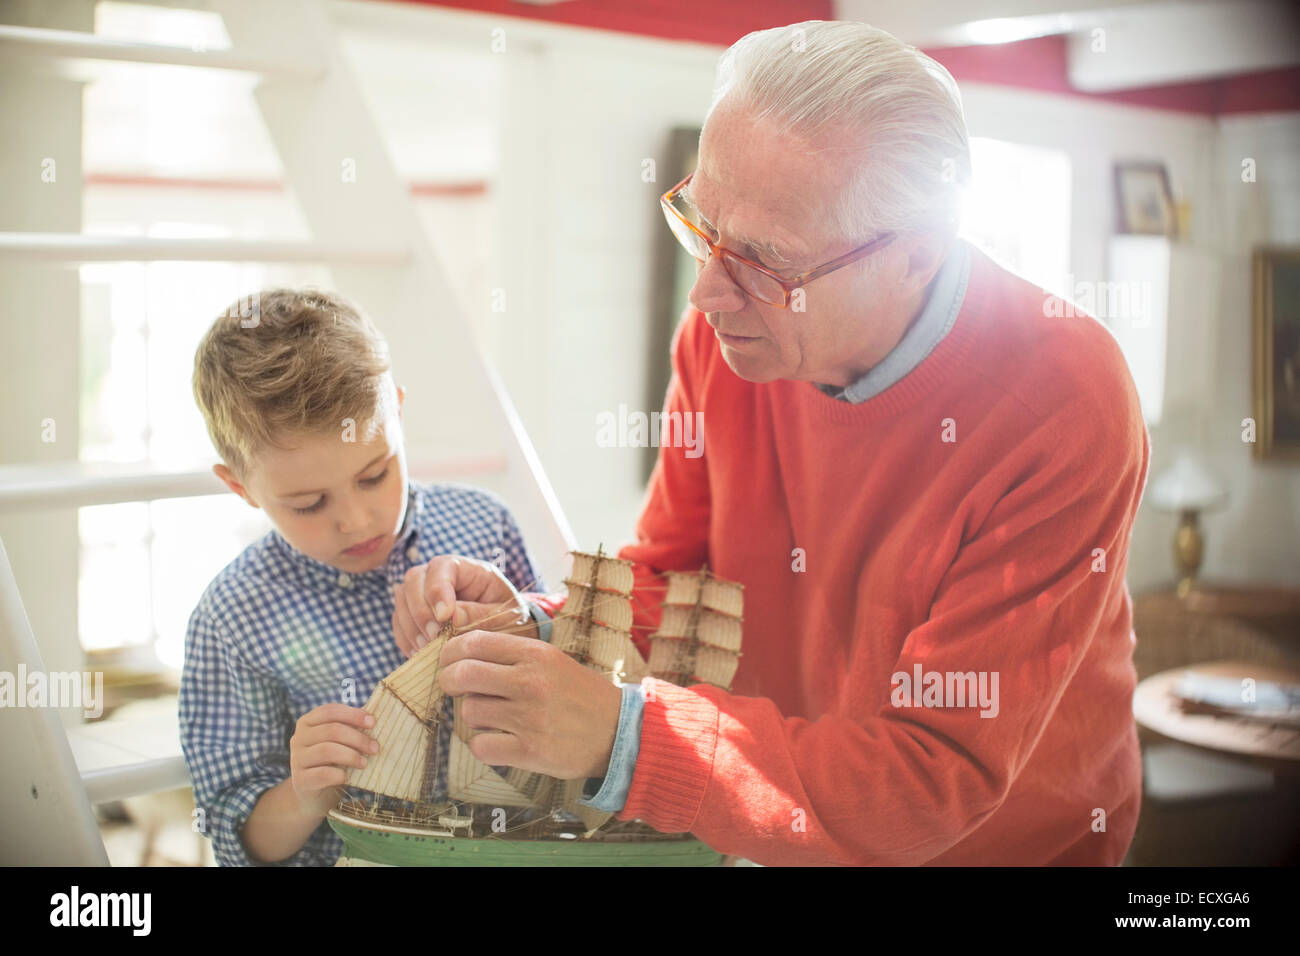 Grandfather and grandson building model sailboat - Stock Image